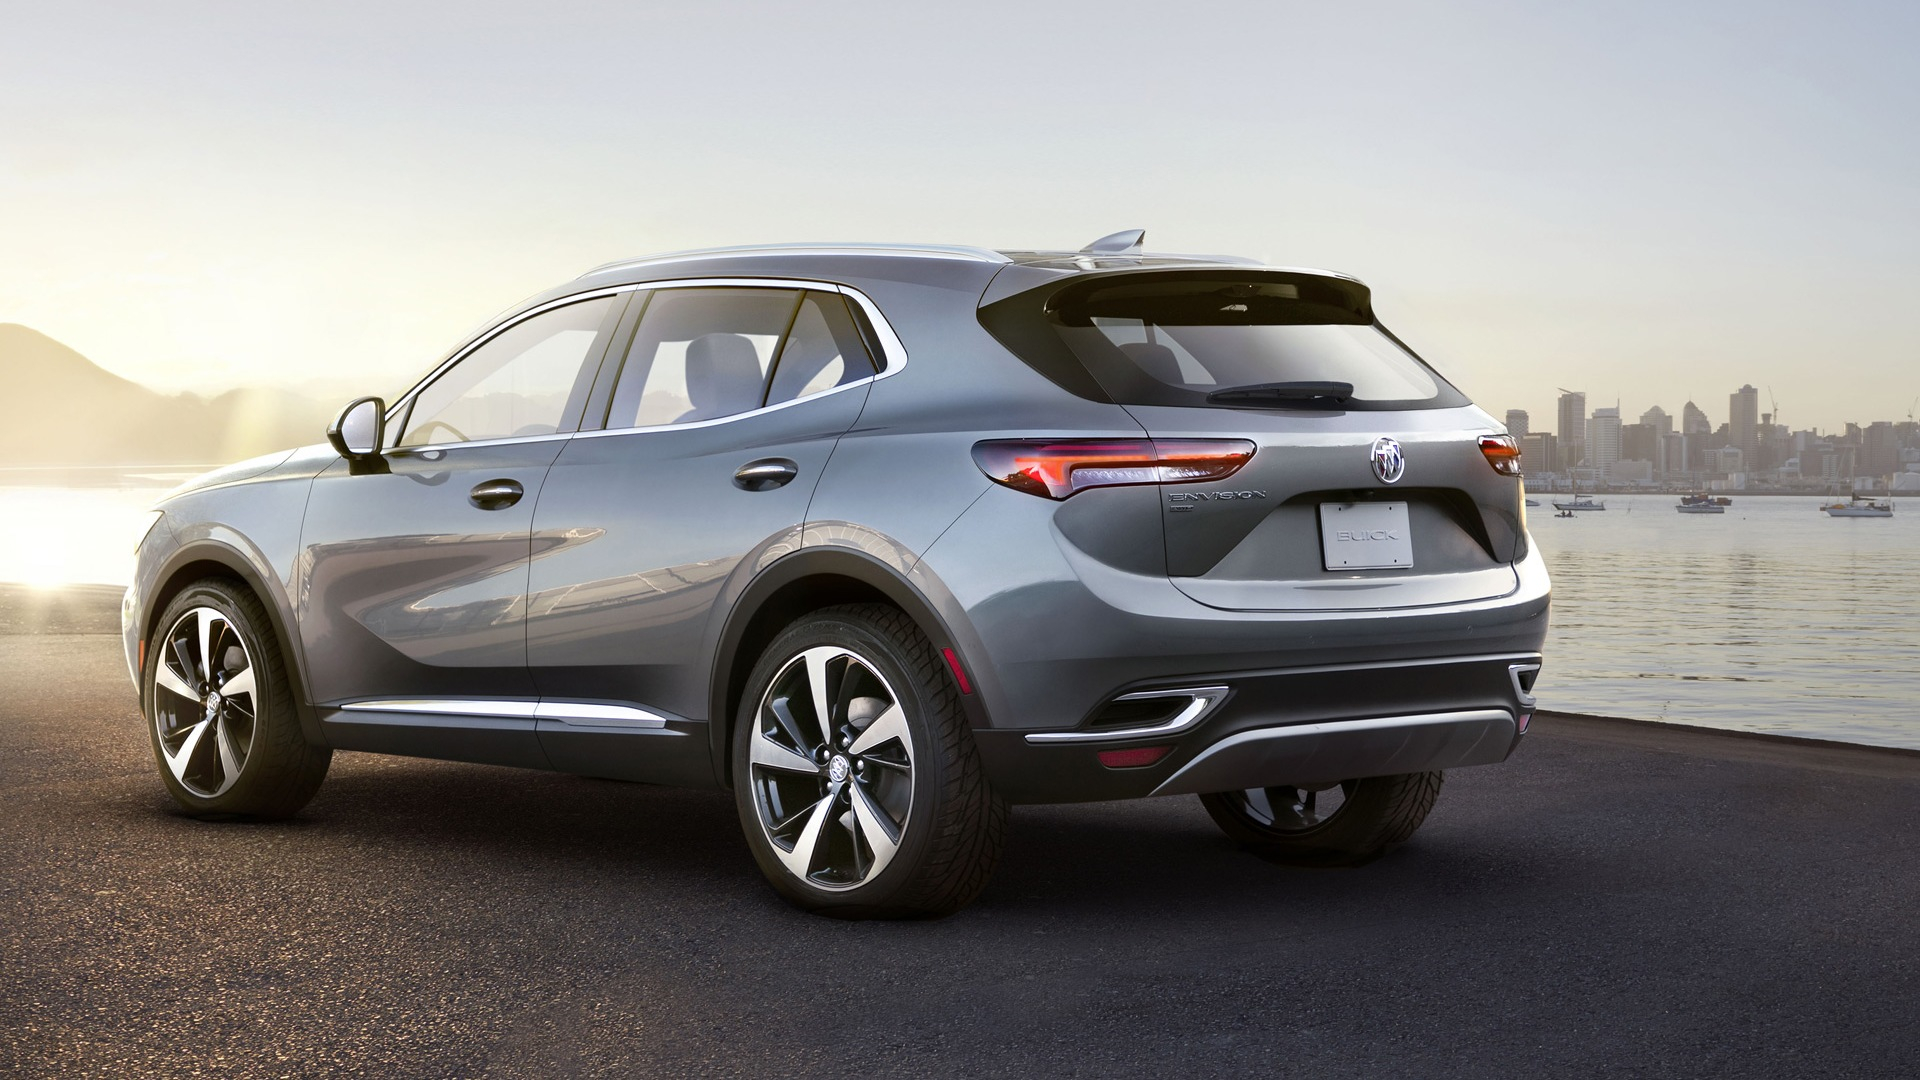 2021 Buick Envision Preview: Bold New Look For Buick's Small Suv How Much Is 2021 Buick Envision